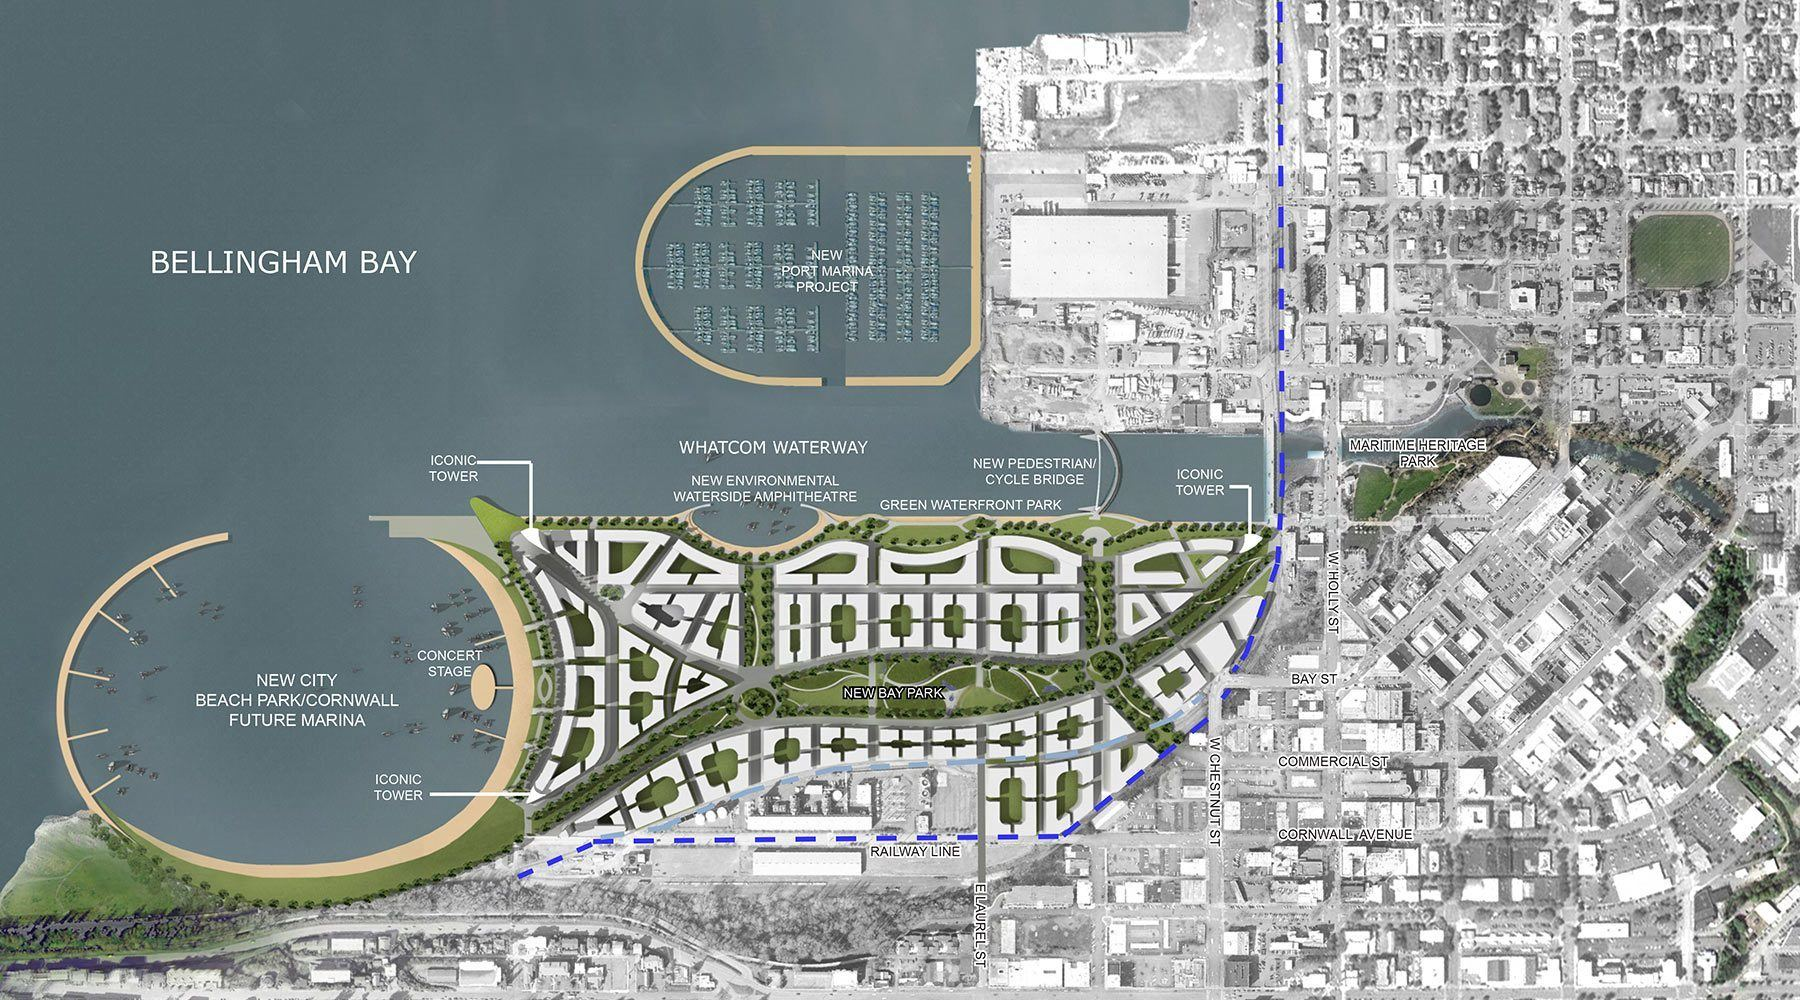 Bellingham Bay Masterplan